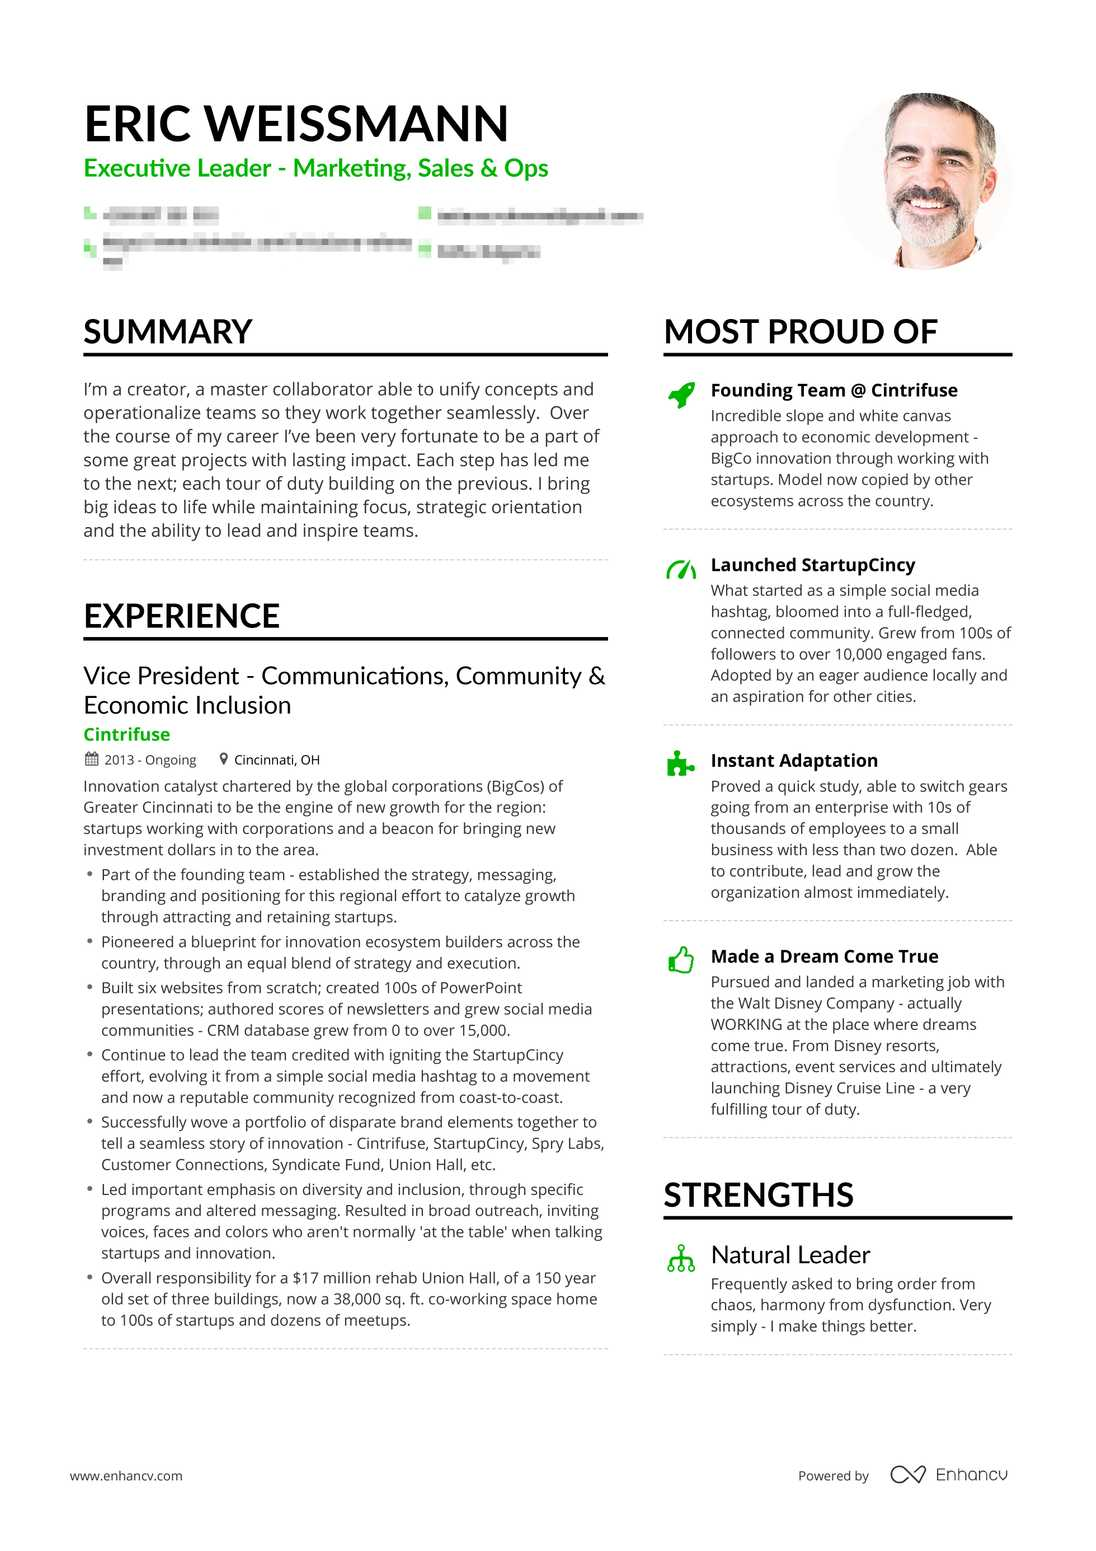 How To Make Your Resume Better Beaufiful How To Make My Resume Better Images What Your